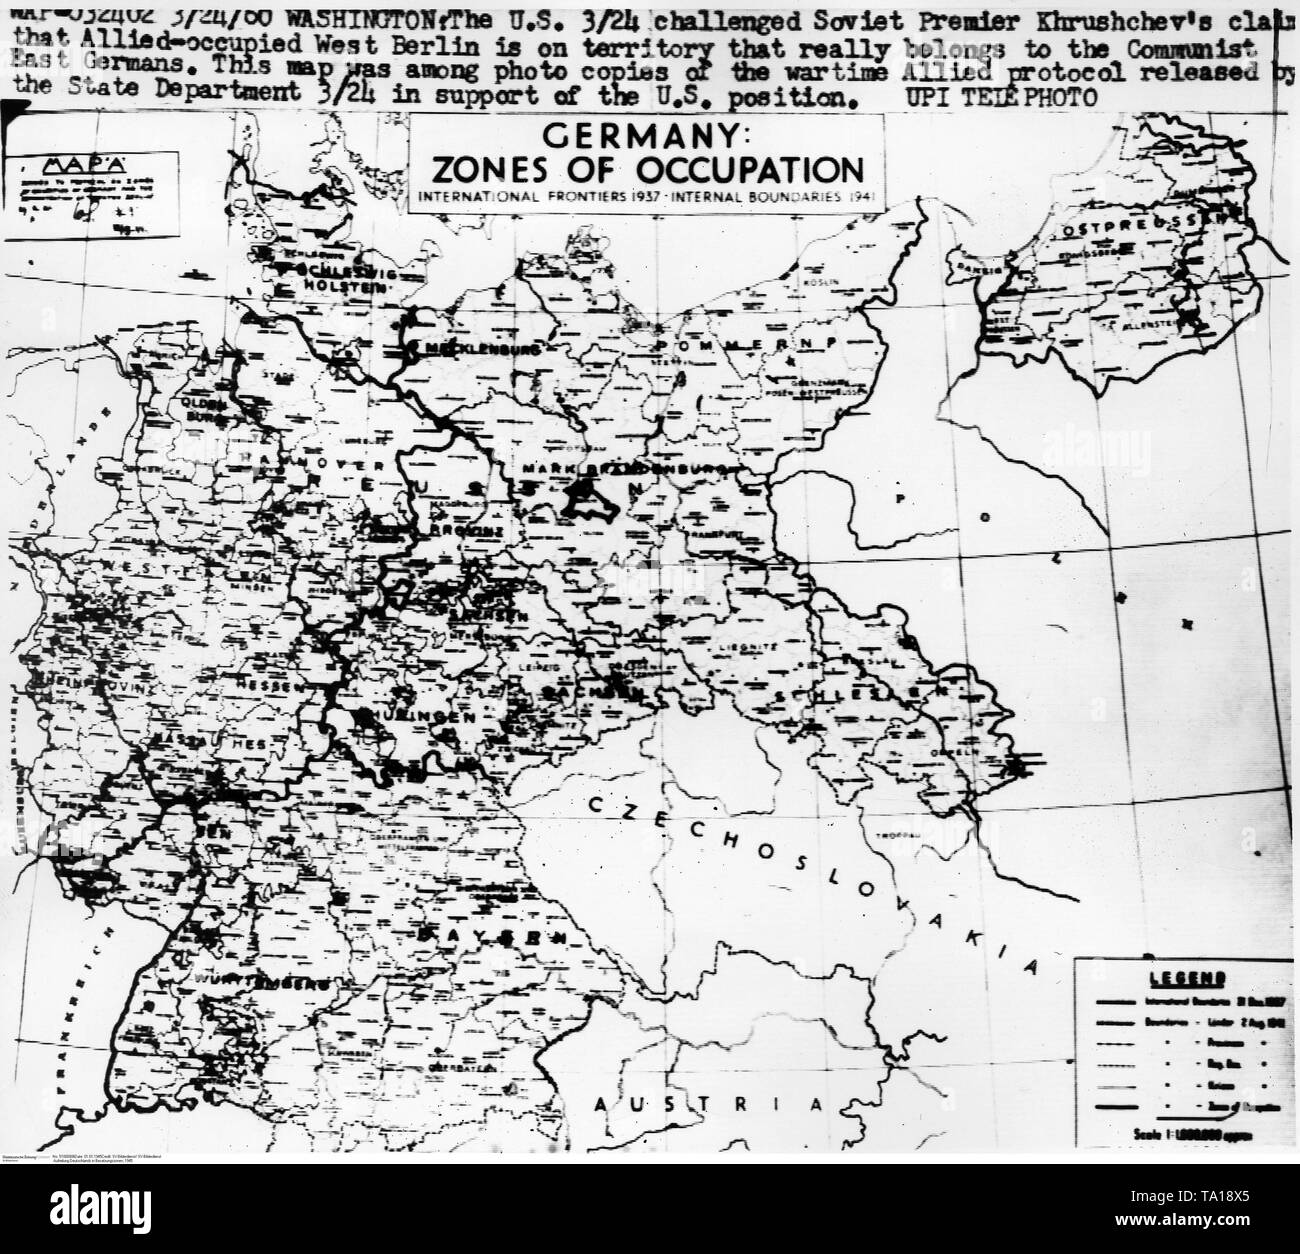 Map Of Allied Occupation Zones In Germany 1945 Stock Photo Alamy